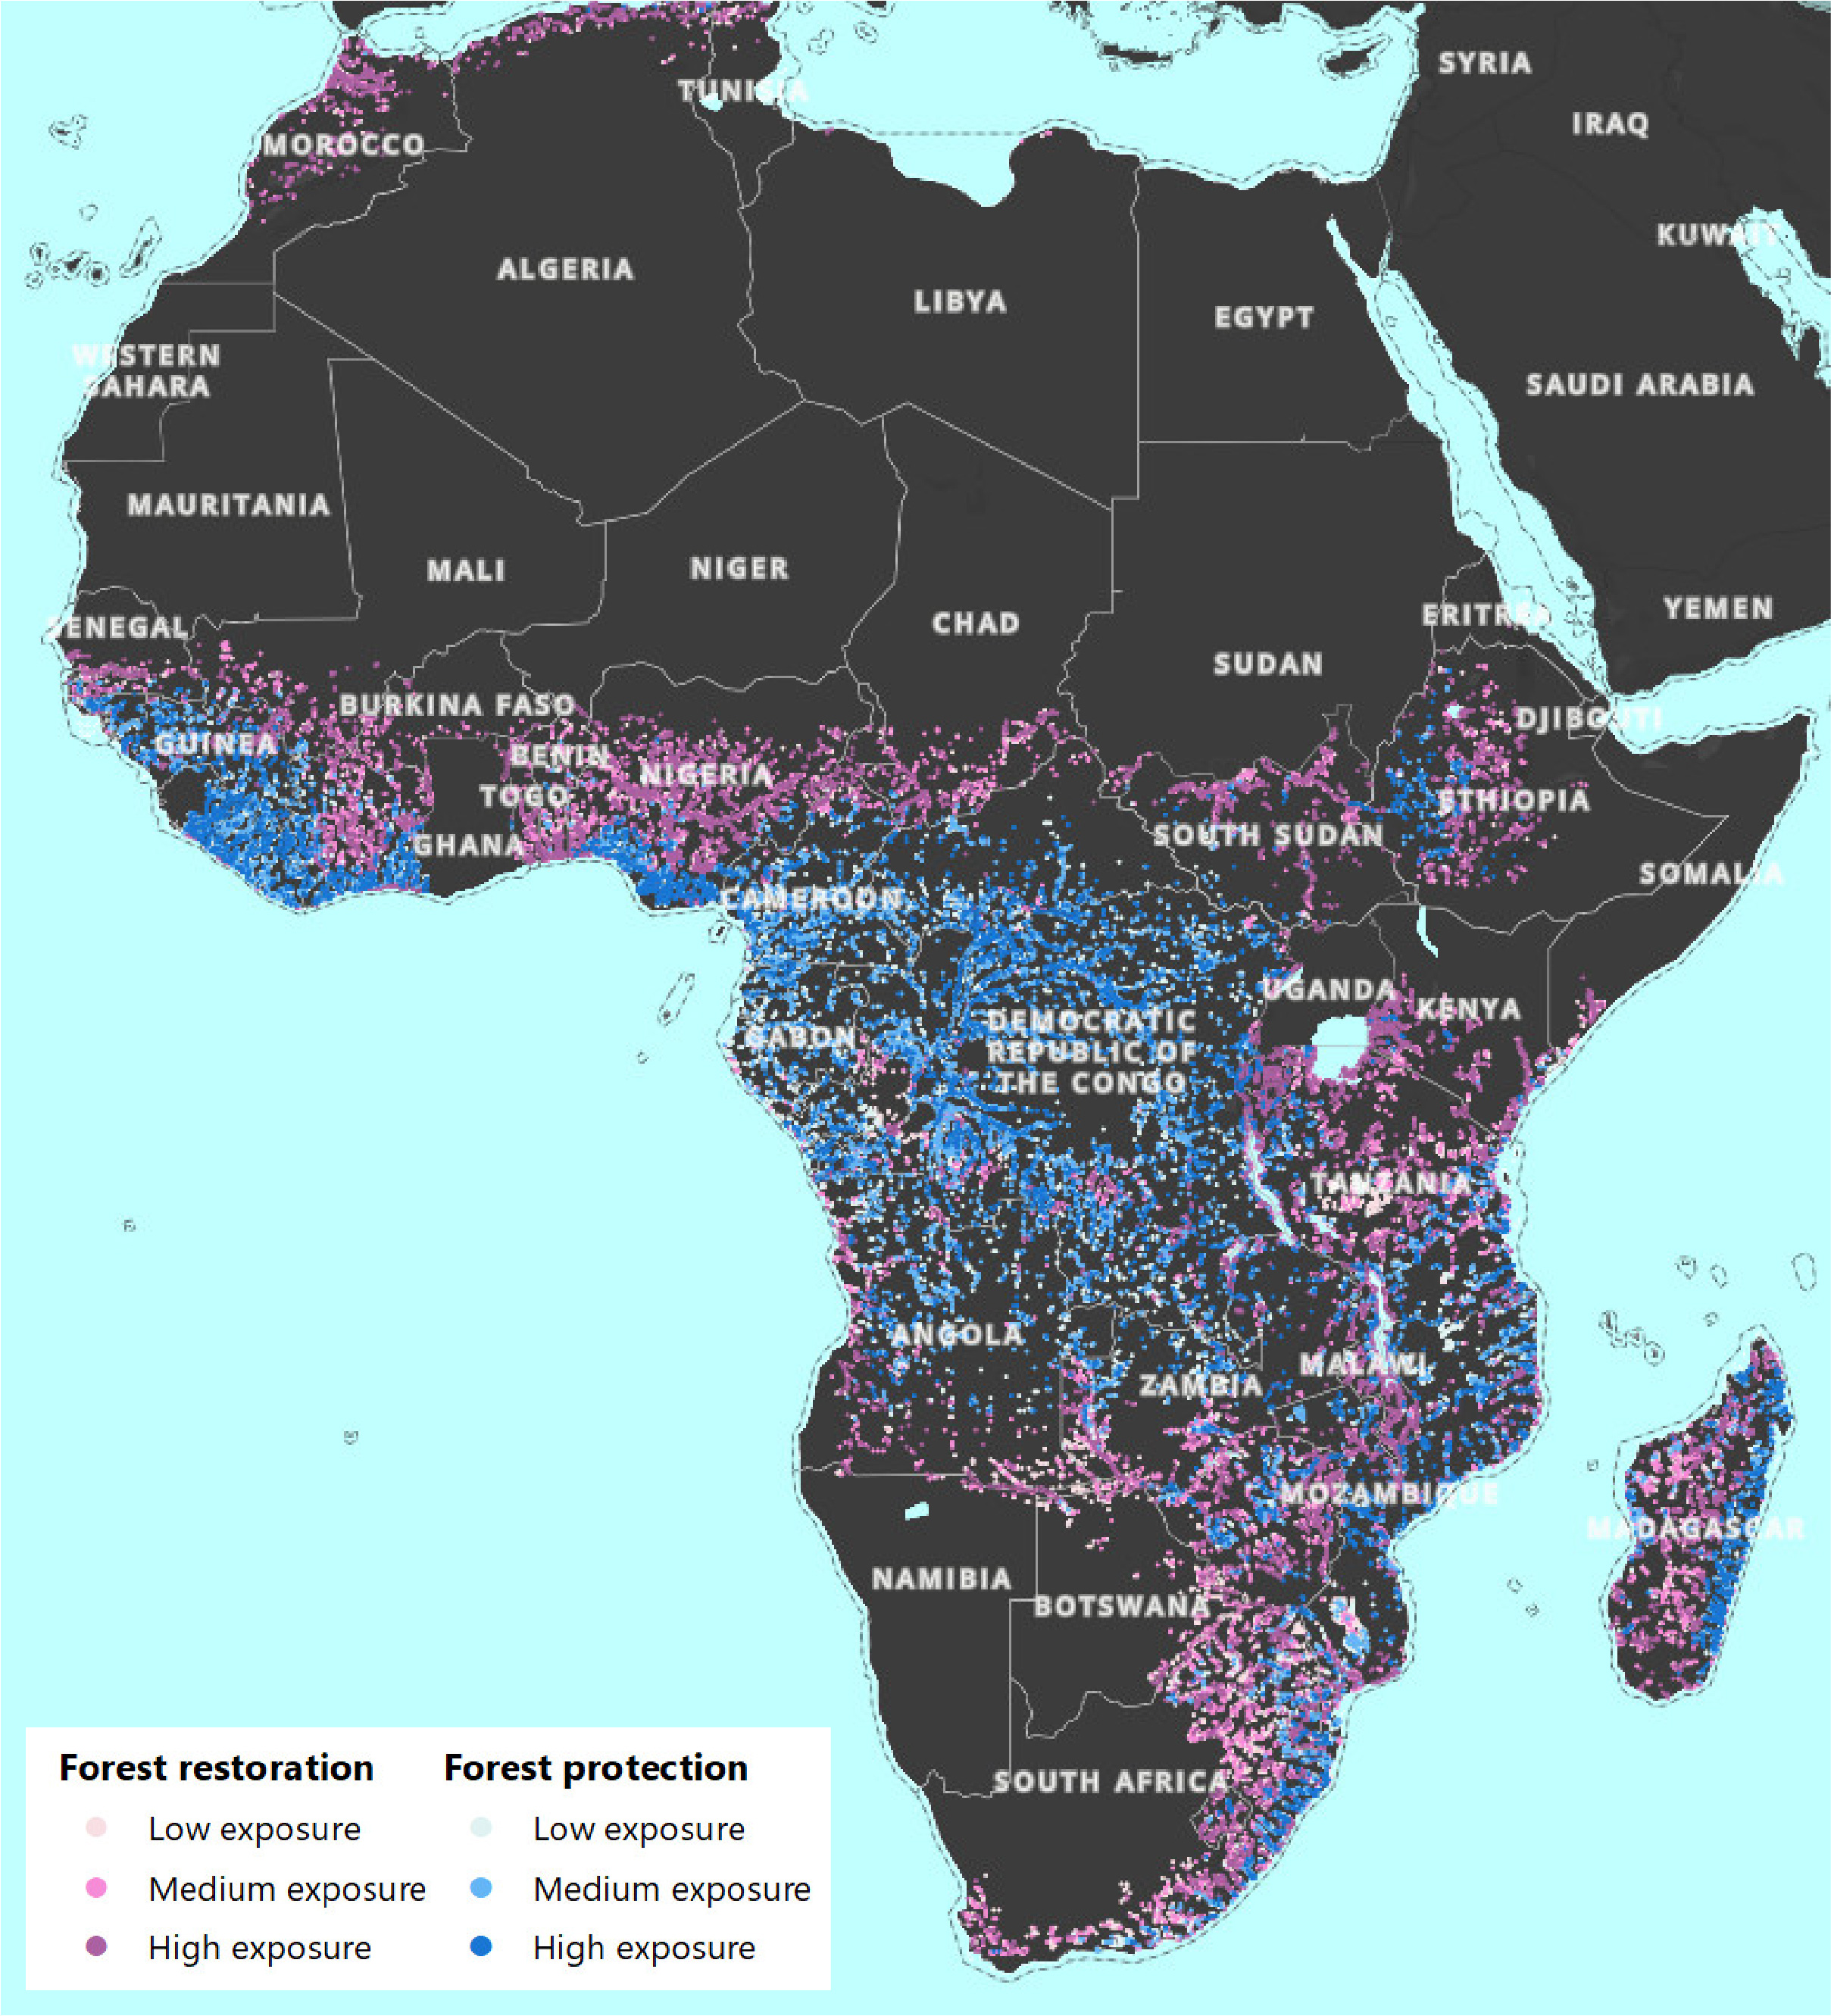 VizRisk Challenge: Opportunity areas for forest restoration or protection to floods in Africa